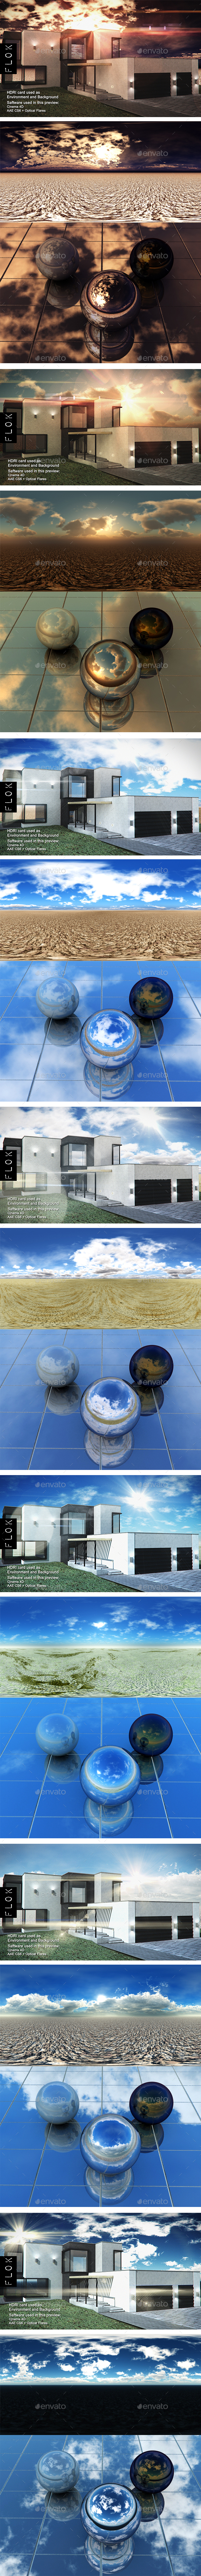 HDRI Pack - Desert vol 24 - 3DOcean Item for Sale